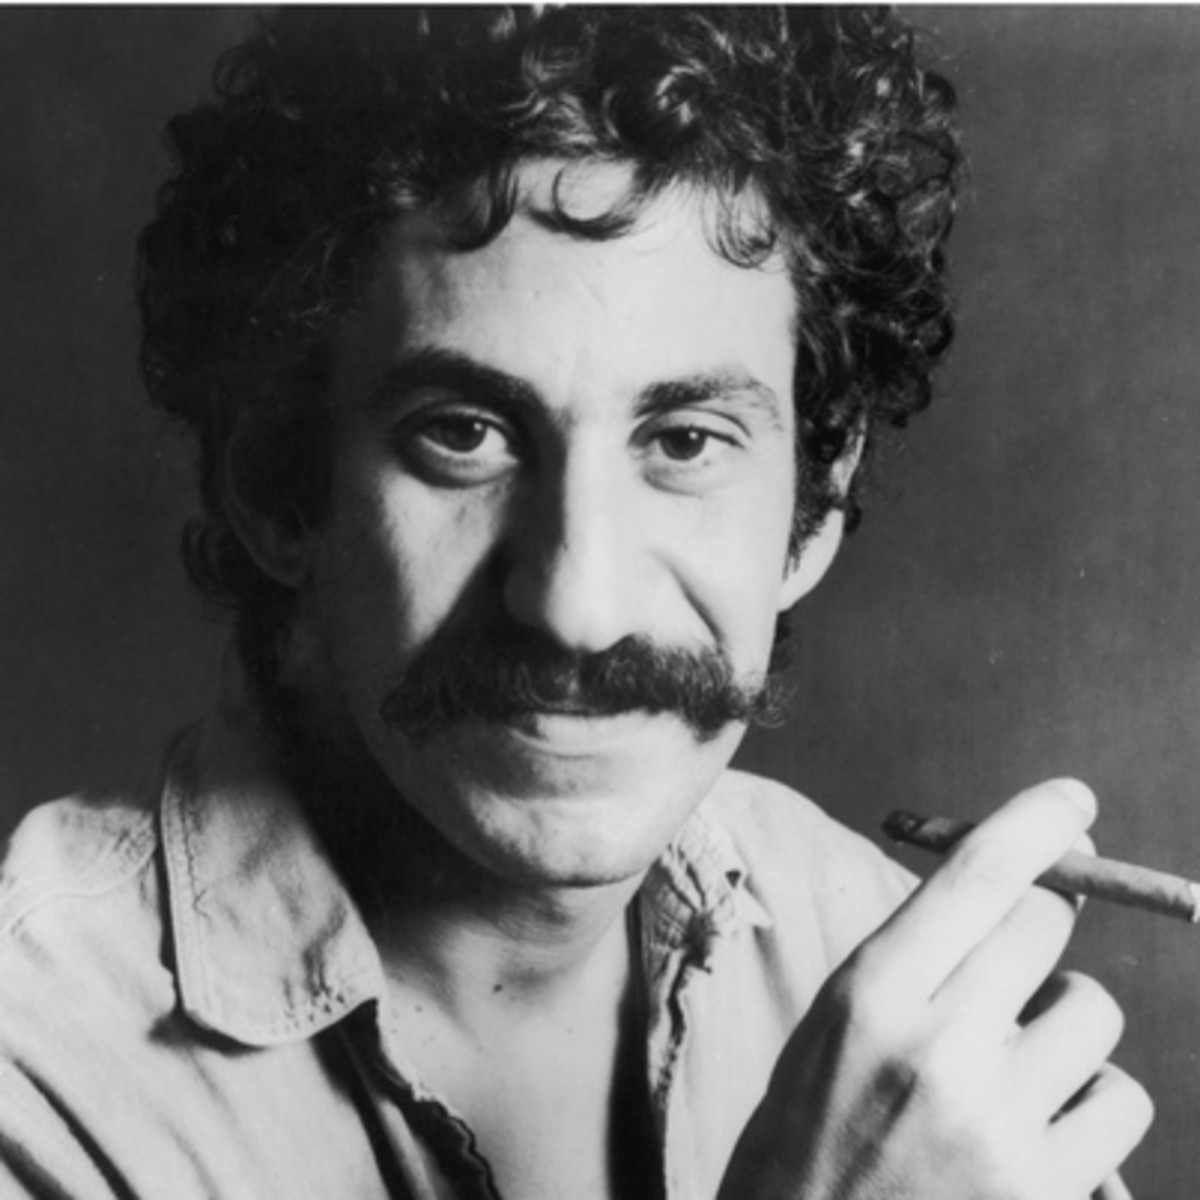 FROM THE VAULTS: Jim Croce born 10 January 1943